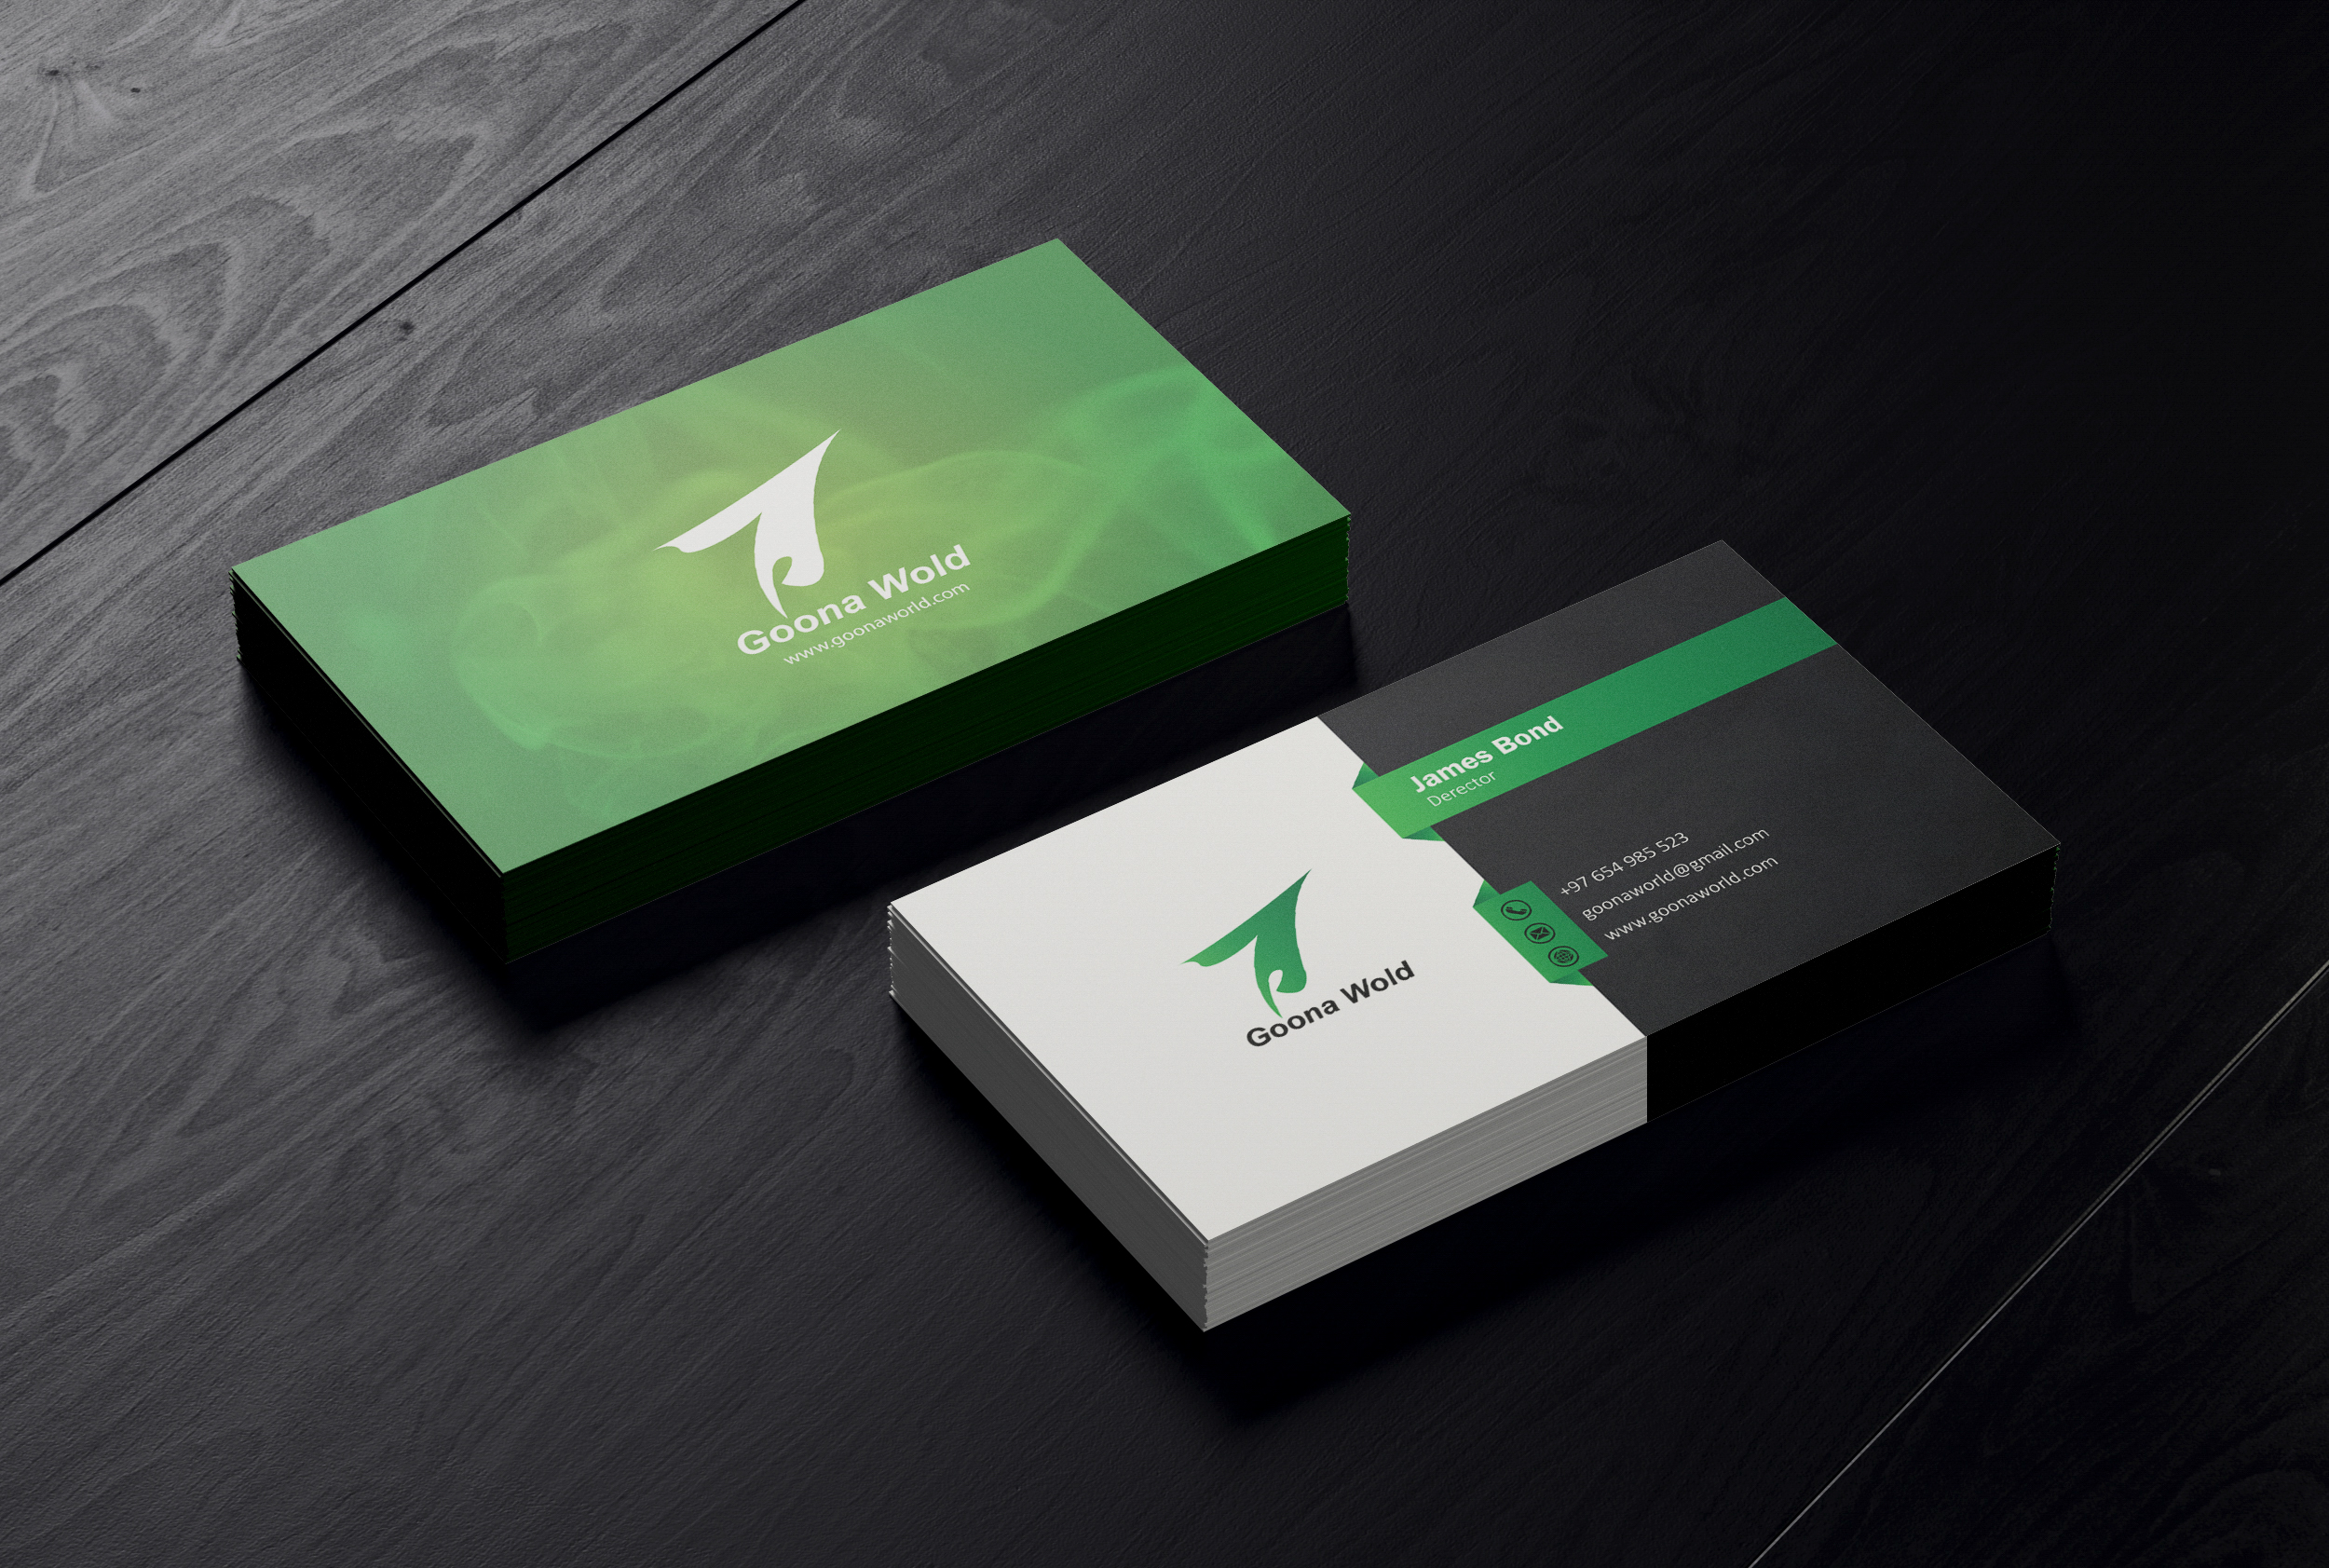 I will design unique business card in 24 hours